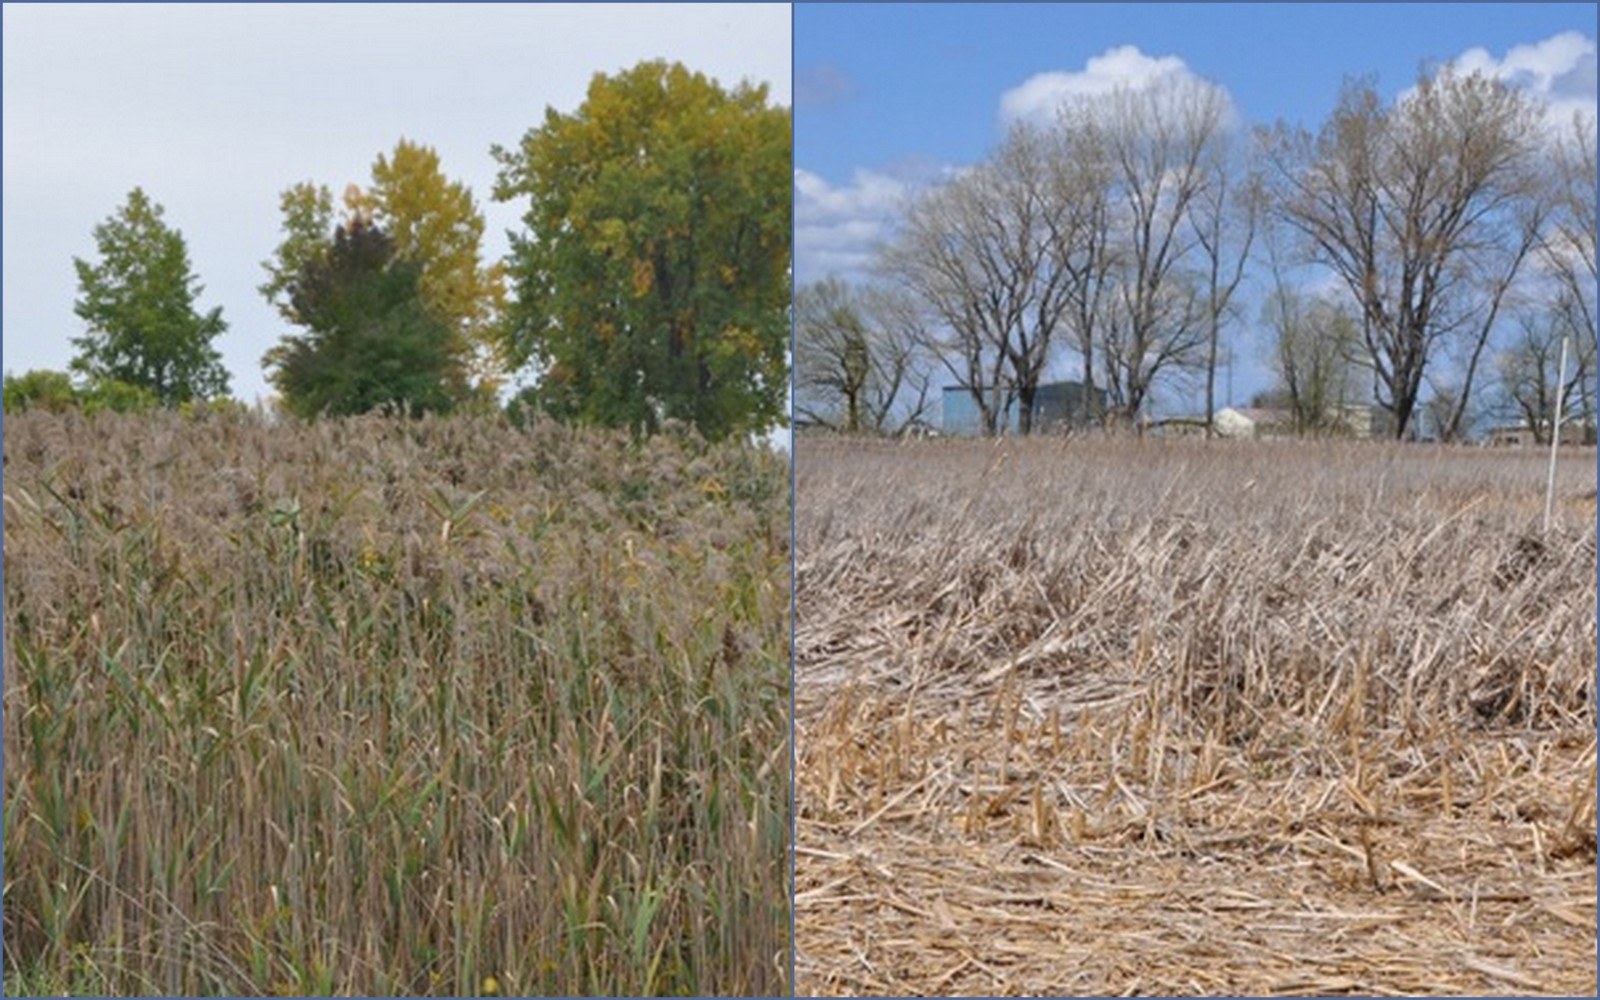 A stand of phragmites at Times Beach, pre-mechanical and chemical treatment in October 2012 (left), and post-mechanical treatment in April 2013 (right). Credit: Andrew Kornacki, USACE.